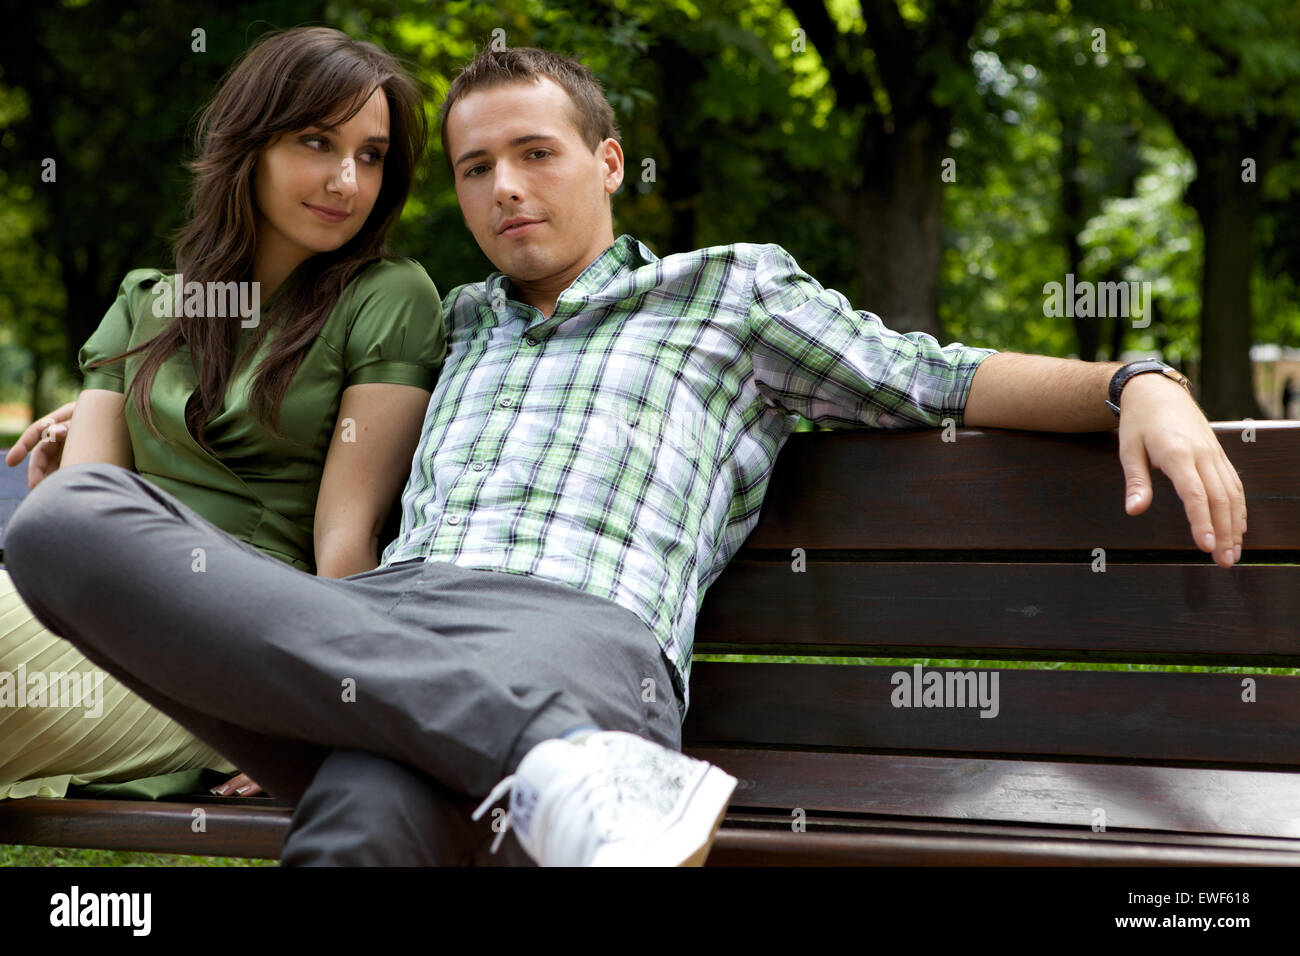 Young couple sitting on bench - Stock Image